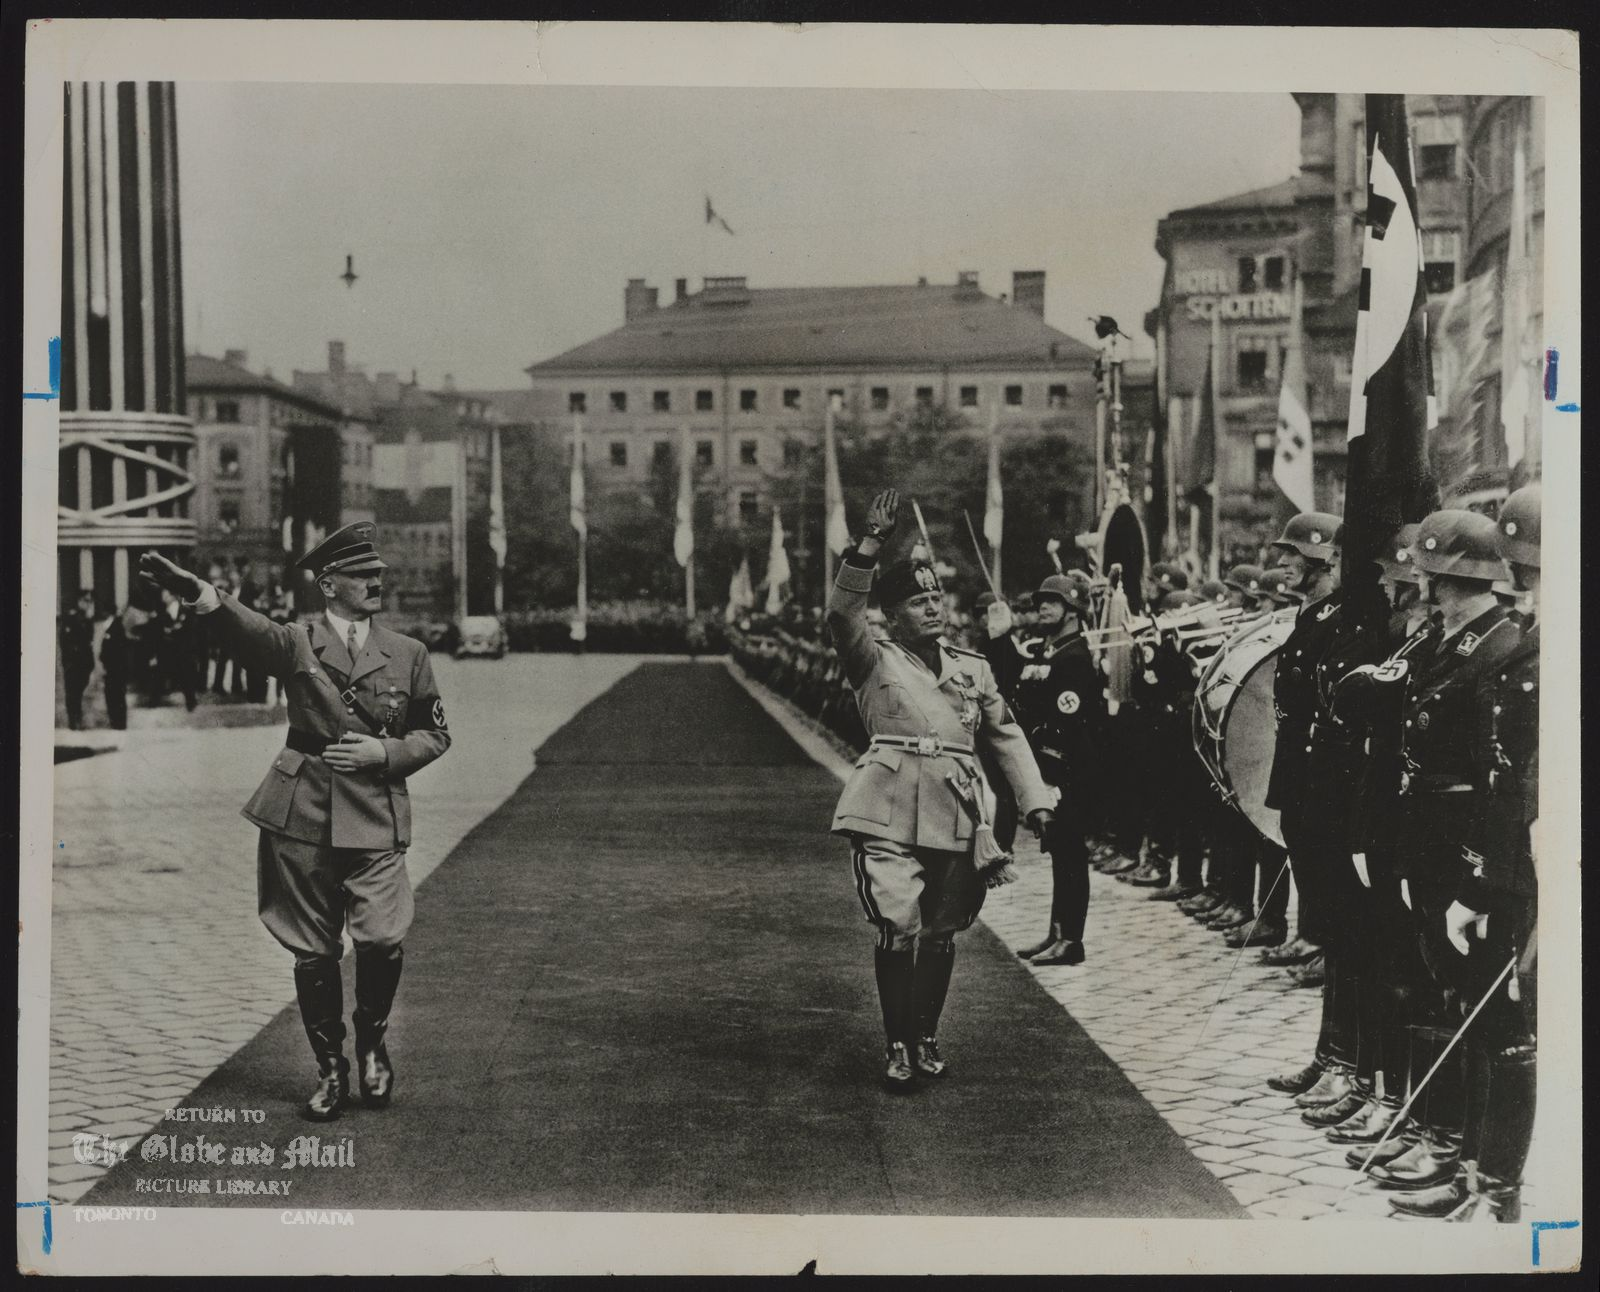 Benito MUSSOLINI Italy. Politician Hitler and Mussolini inspect a guard of honor in Munich in 1937